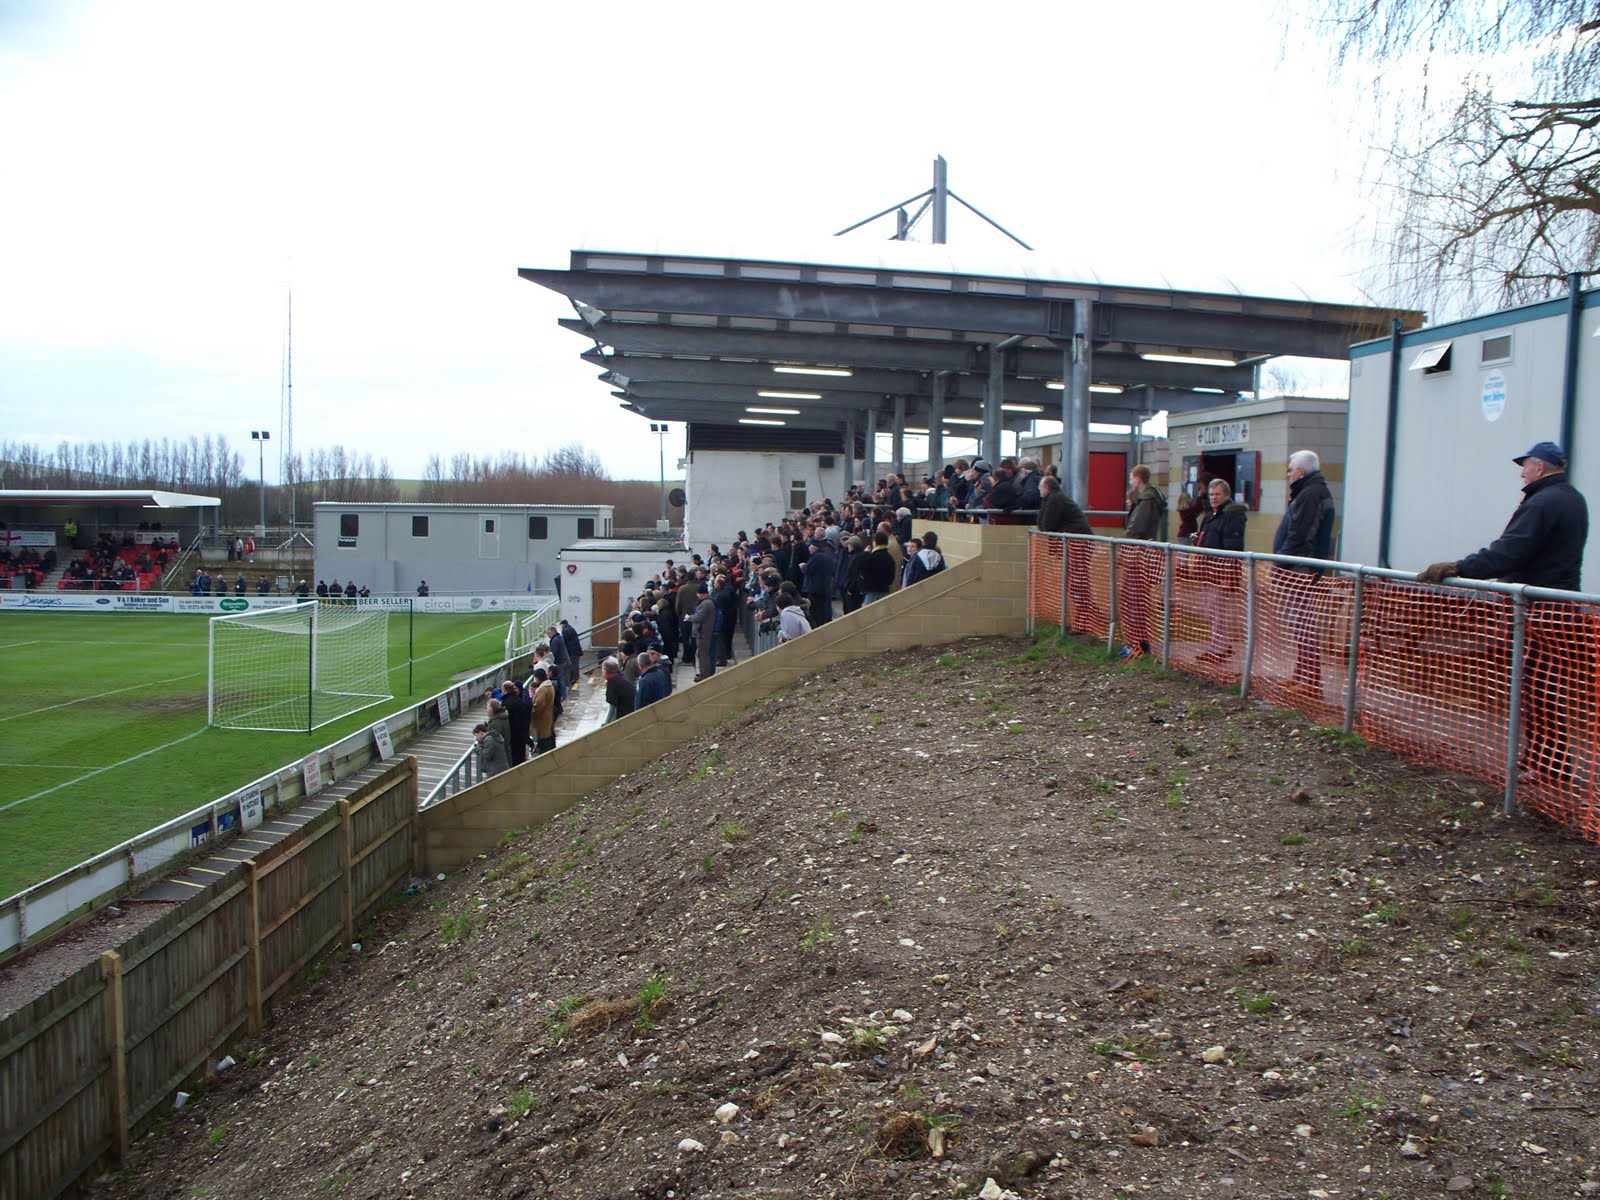 The Wycombe Wanderer Lewes The Dripping Pan